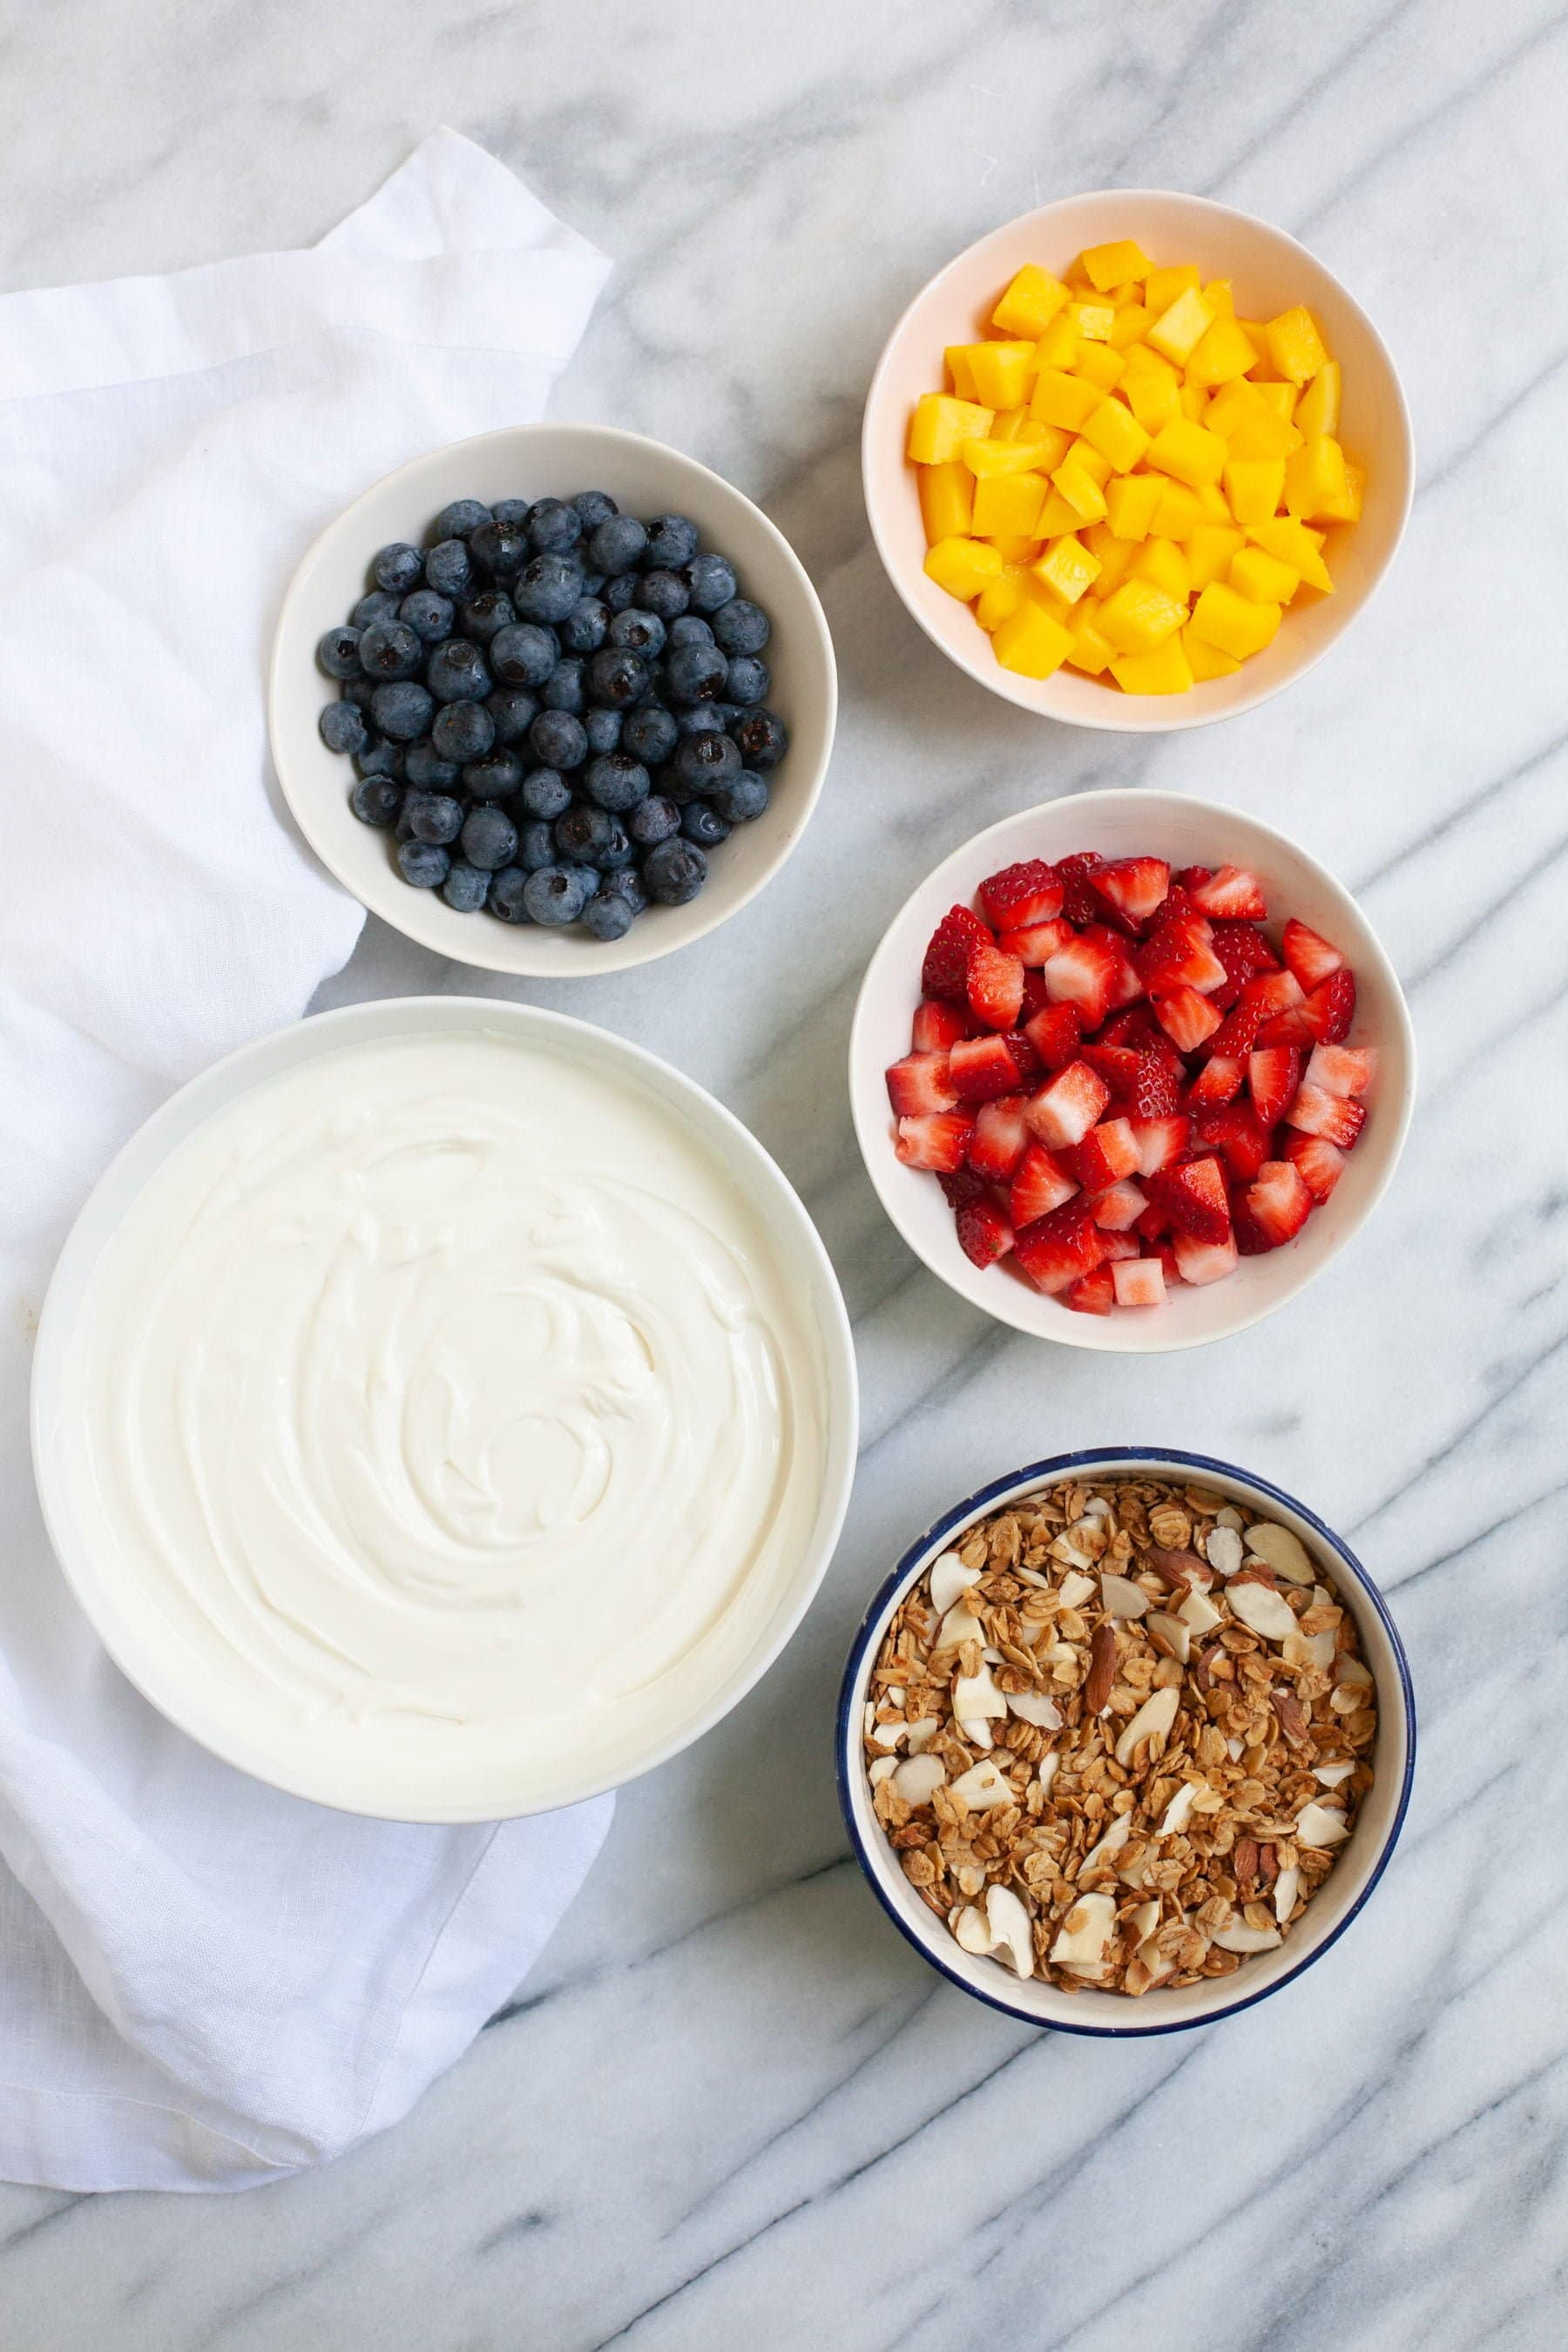 Overhead shot of ingredients for Meal Prep Fruit and Yogurt Parfaits - yogurt, fruit, and granola in bowls